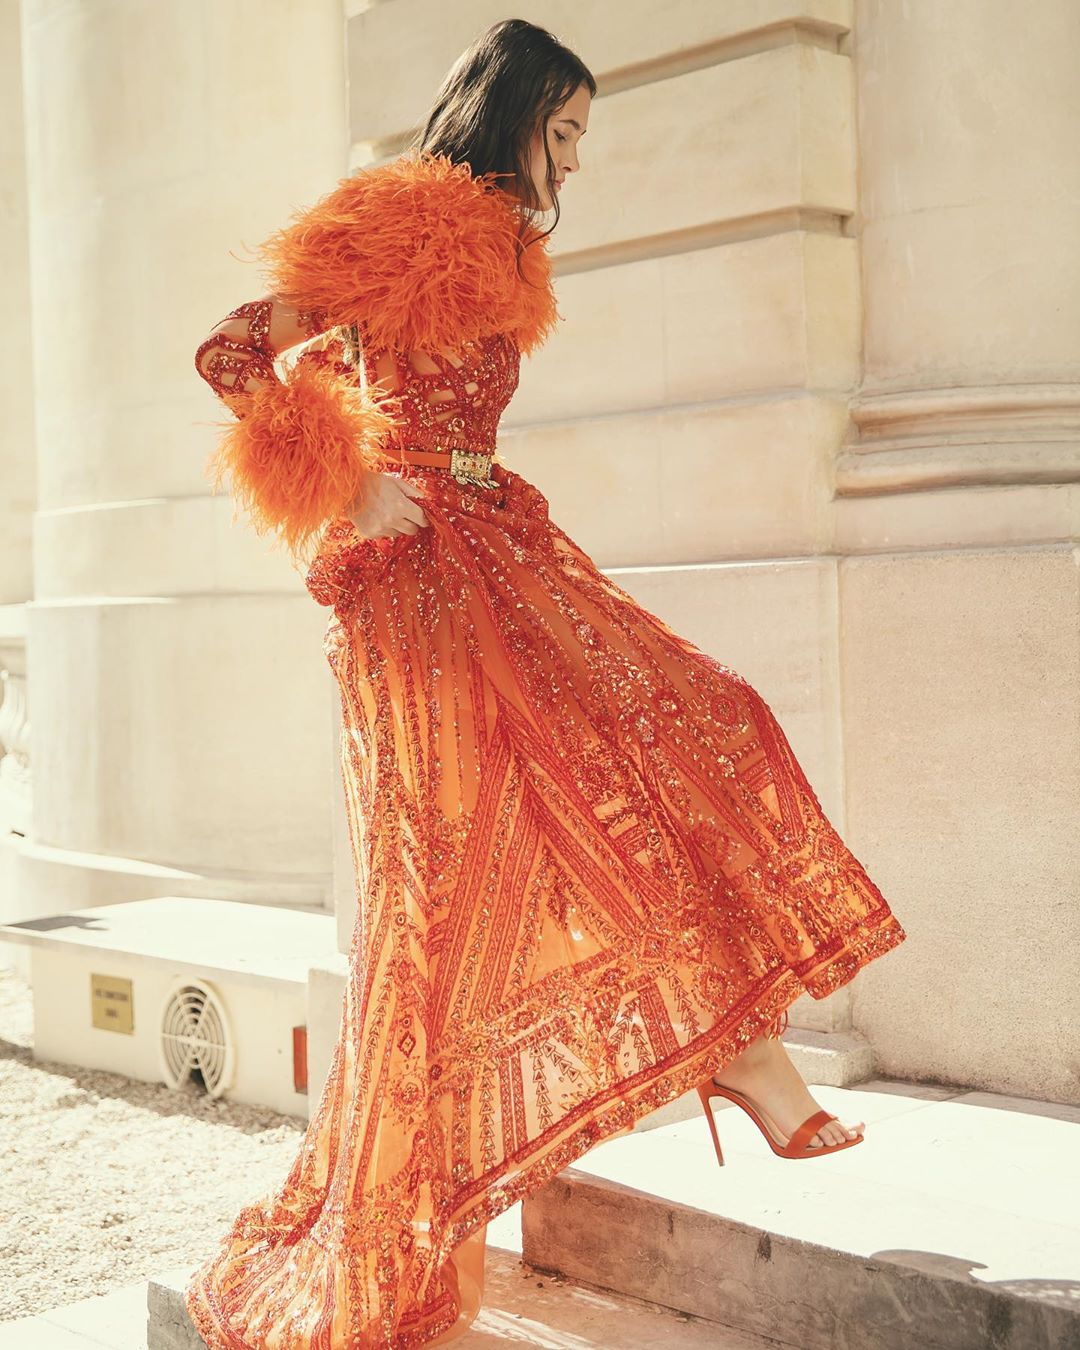 Colorful Orange Sequin Dress with Long Sleeves, Sequins and Feather Trim.